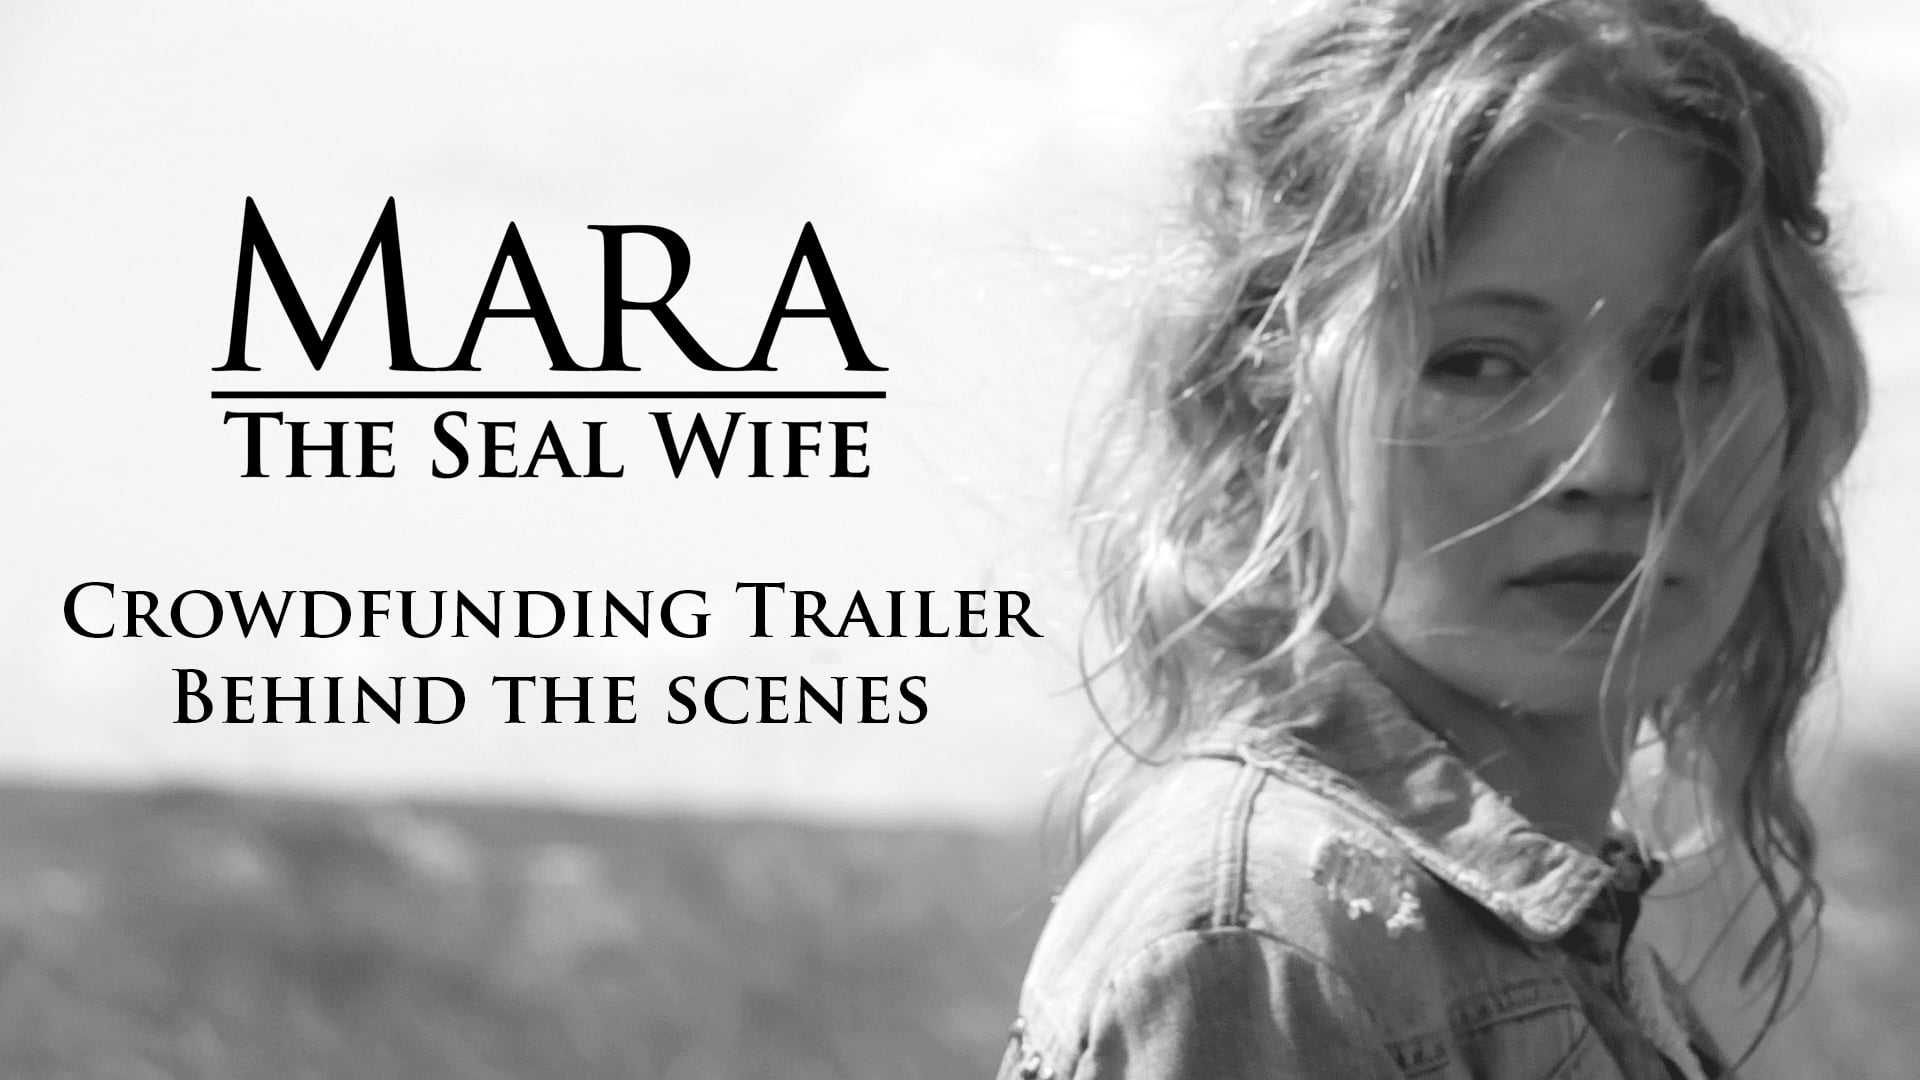 Mara: The Seal Wife - Crowdfunding Teaser Trailer - Behind The Scenes